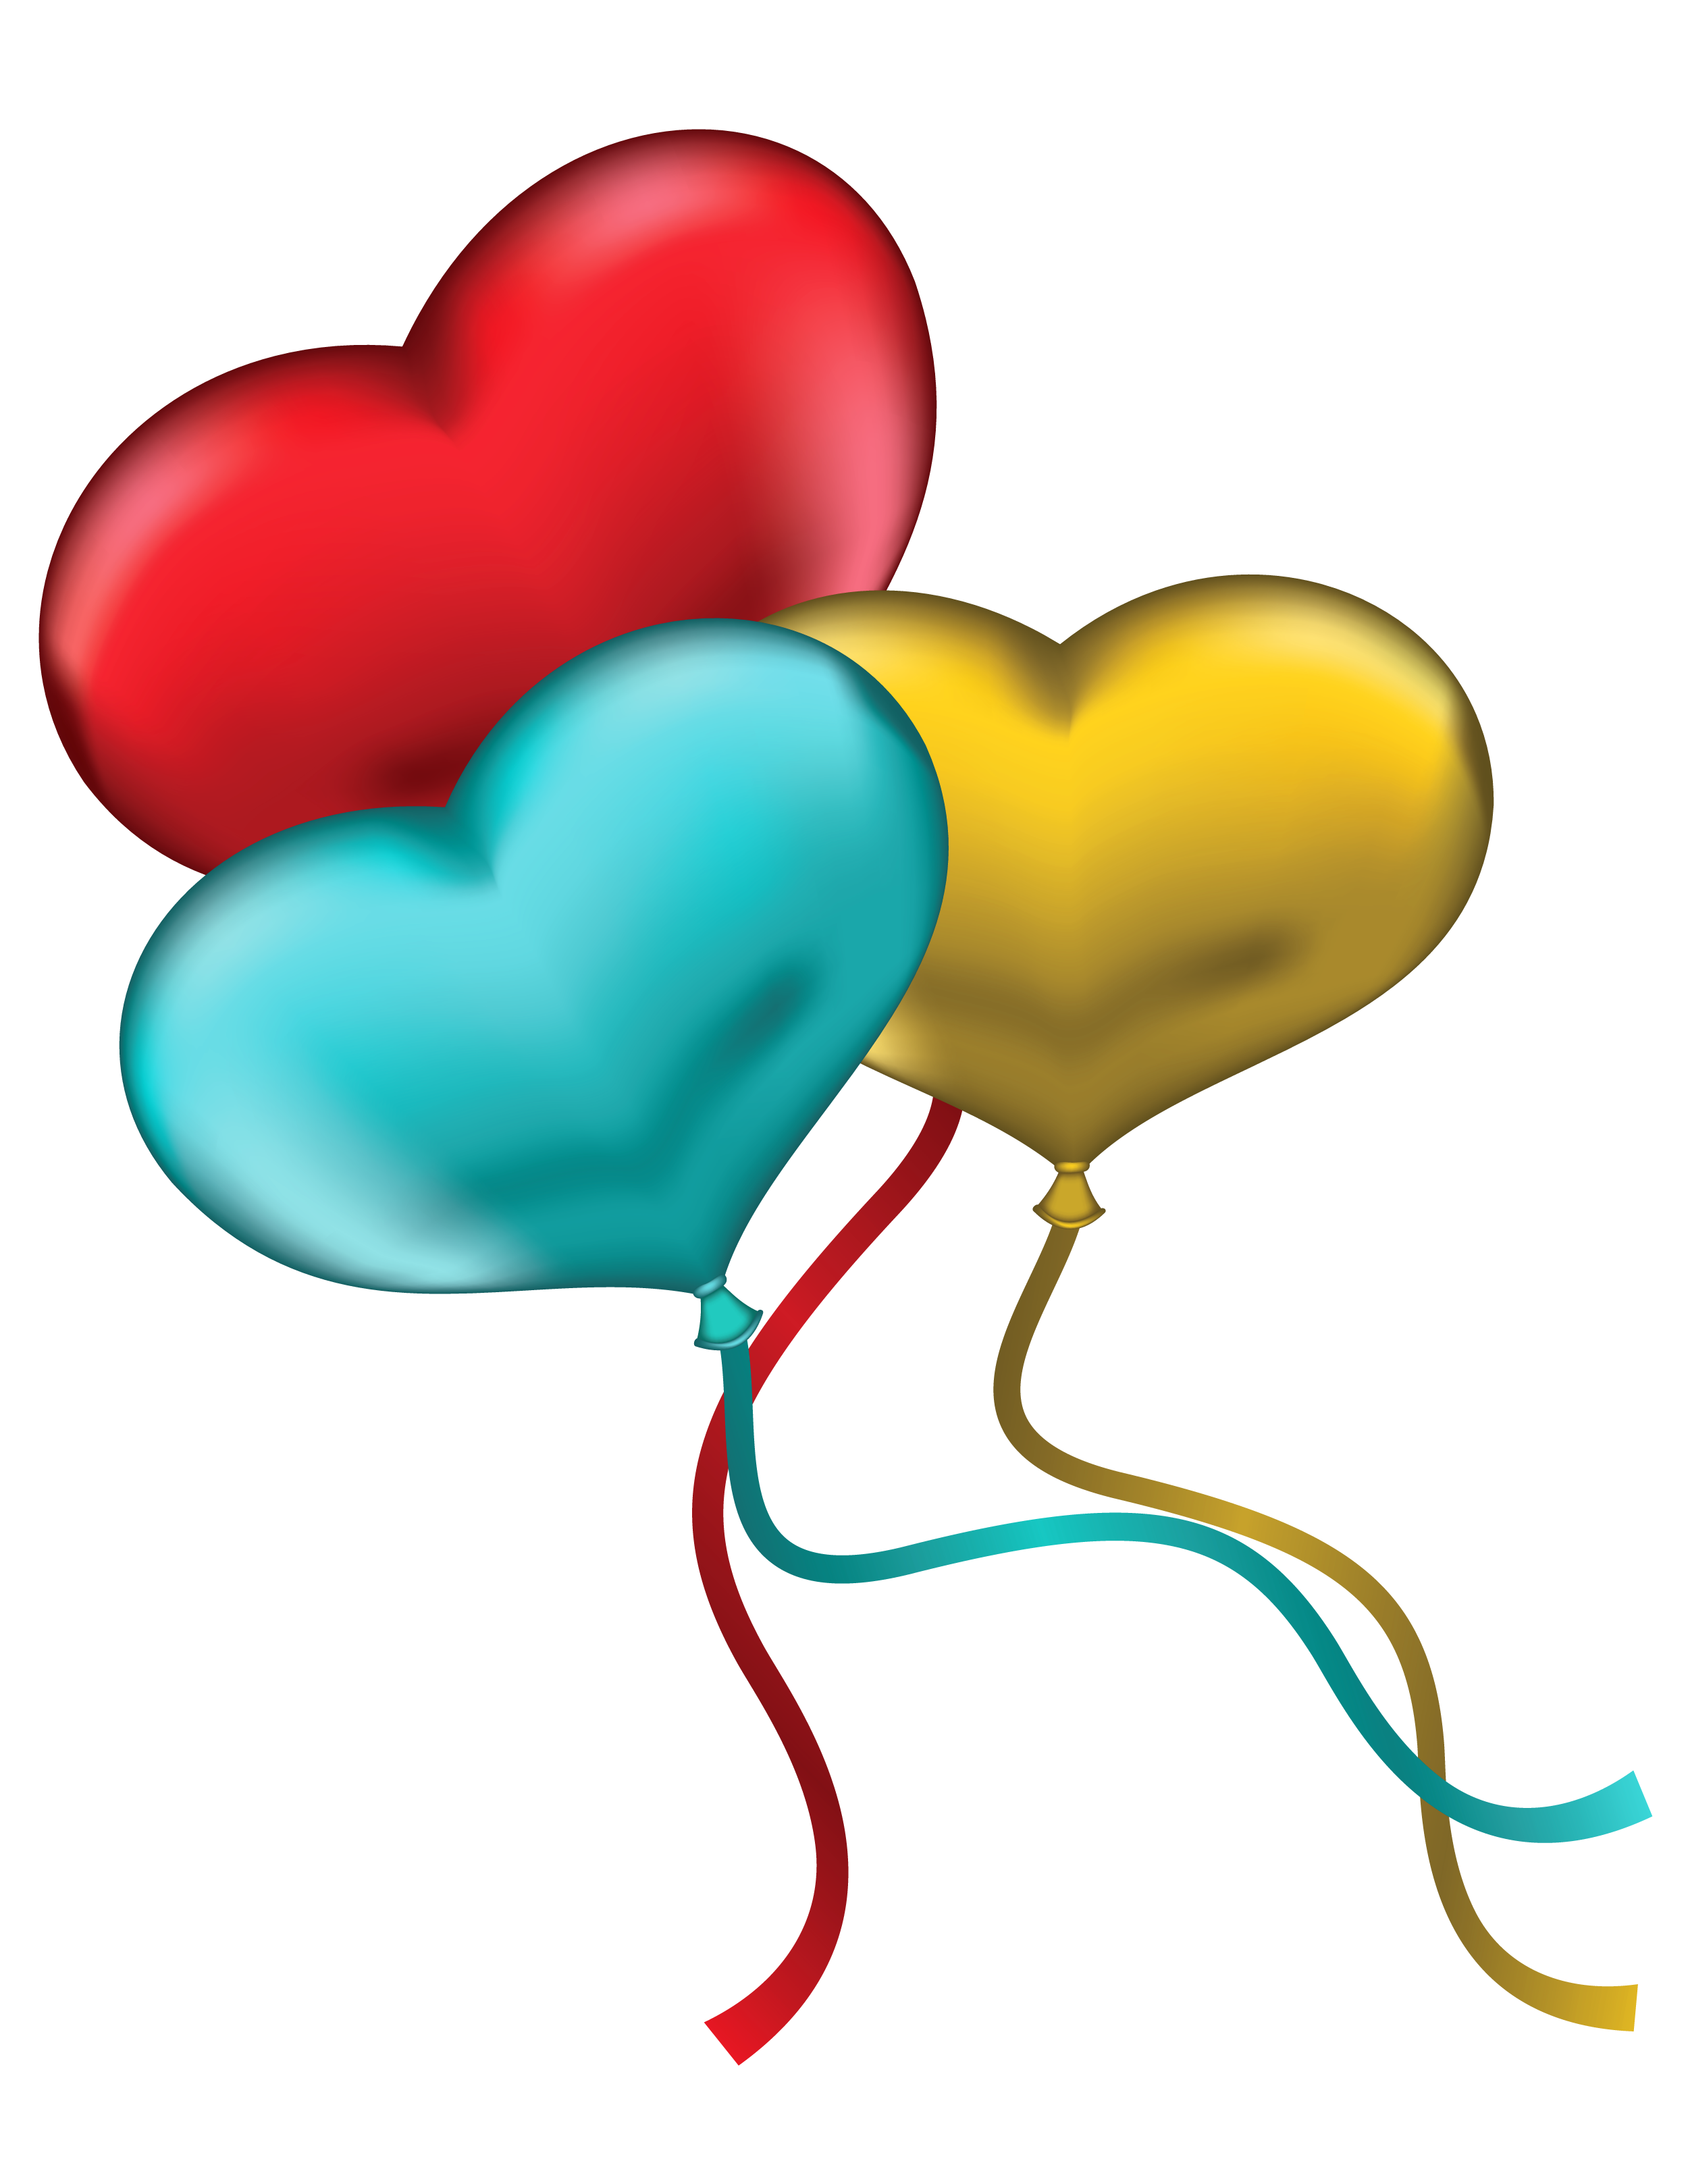 Balloon clipart free images 2